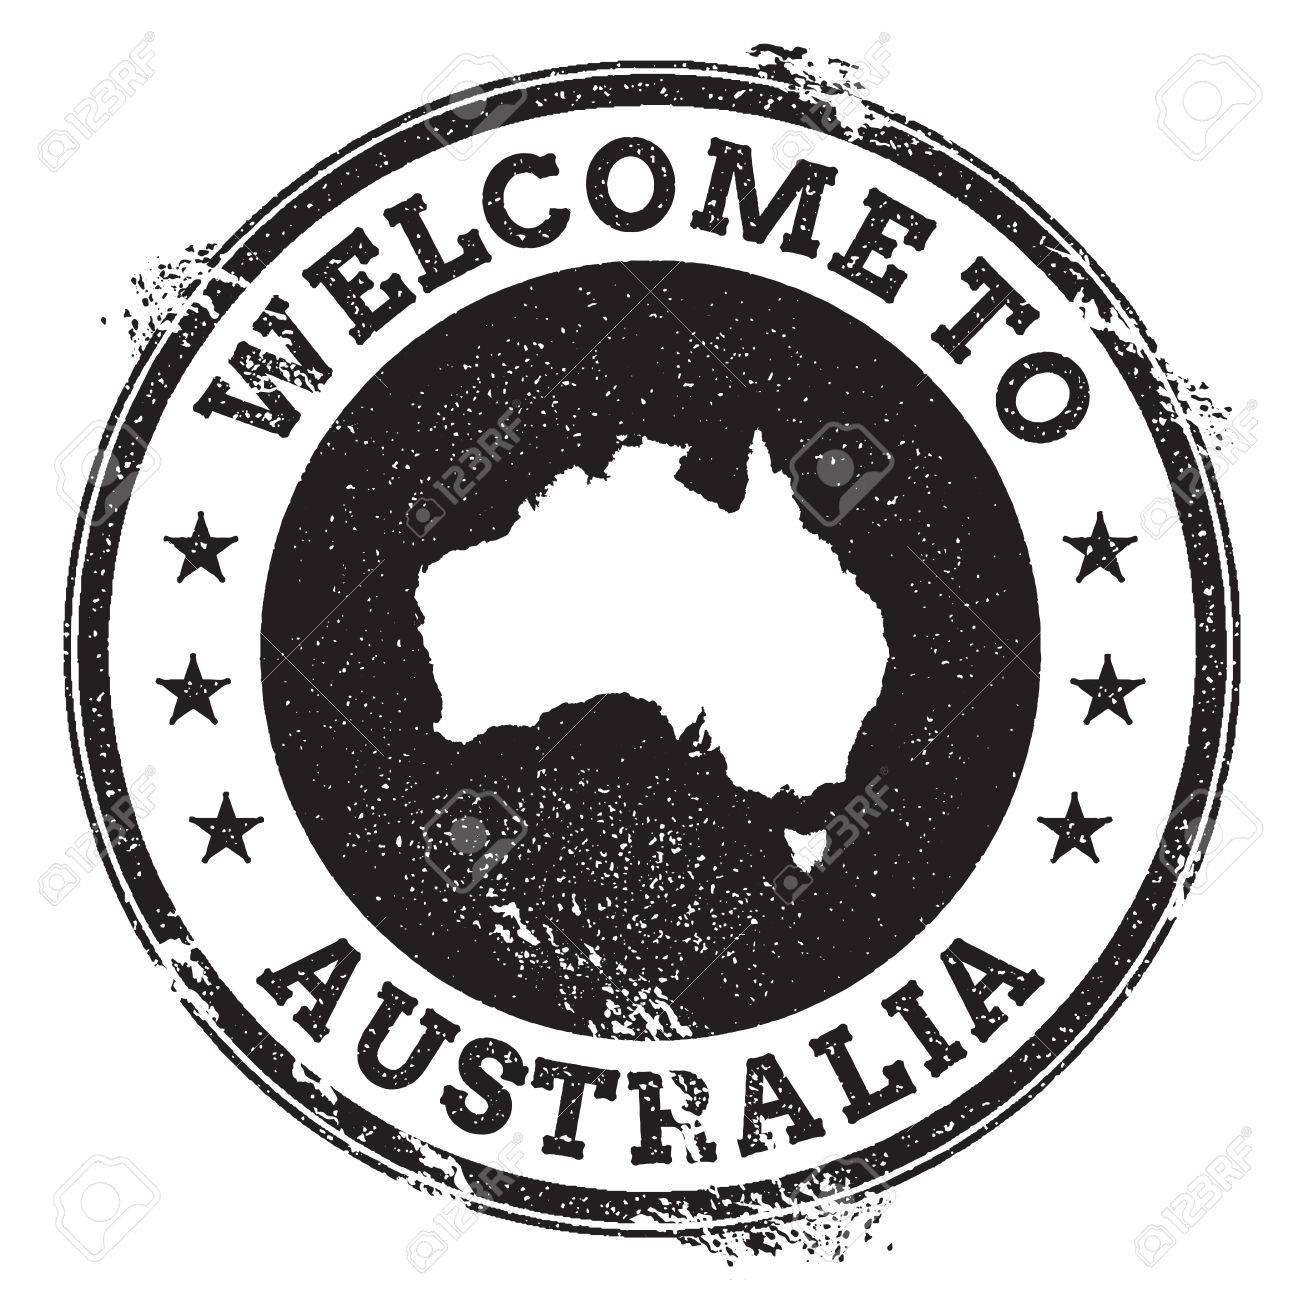 Vintage Passport Welcome Stamp With Australia Map Grunge Rubber